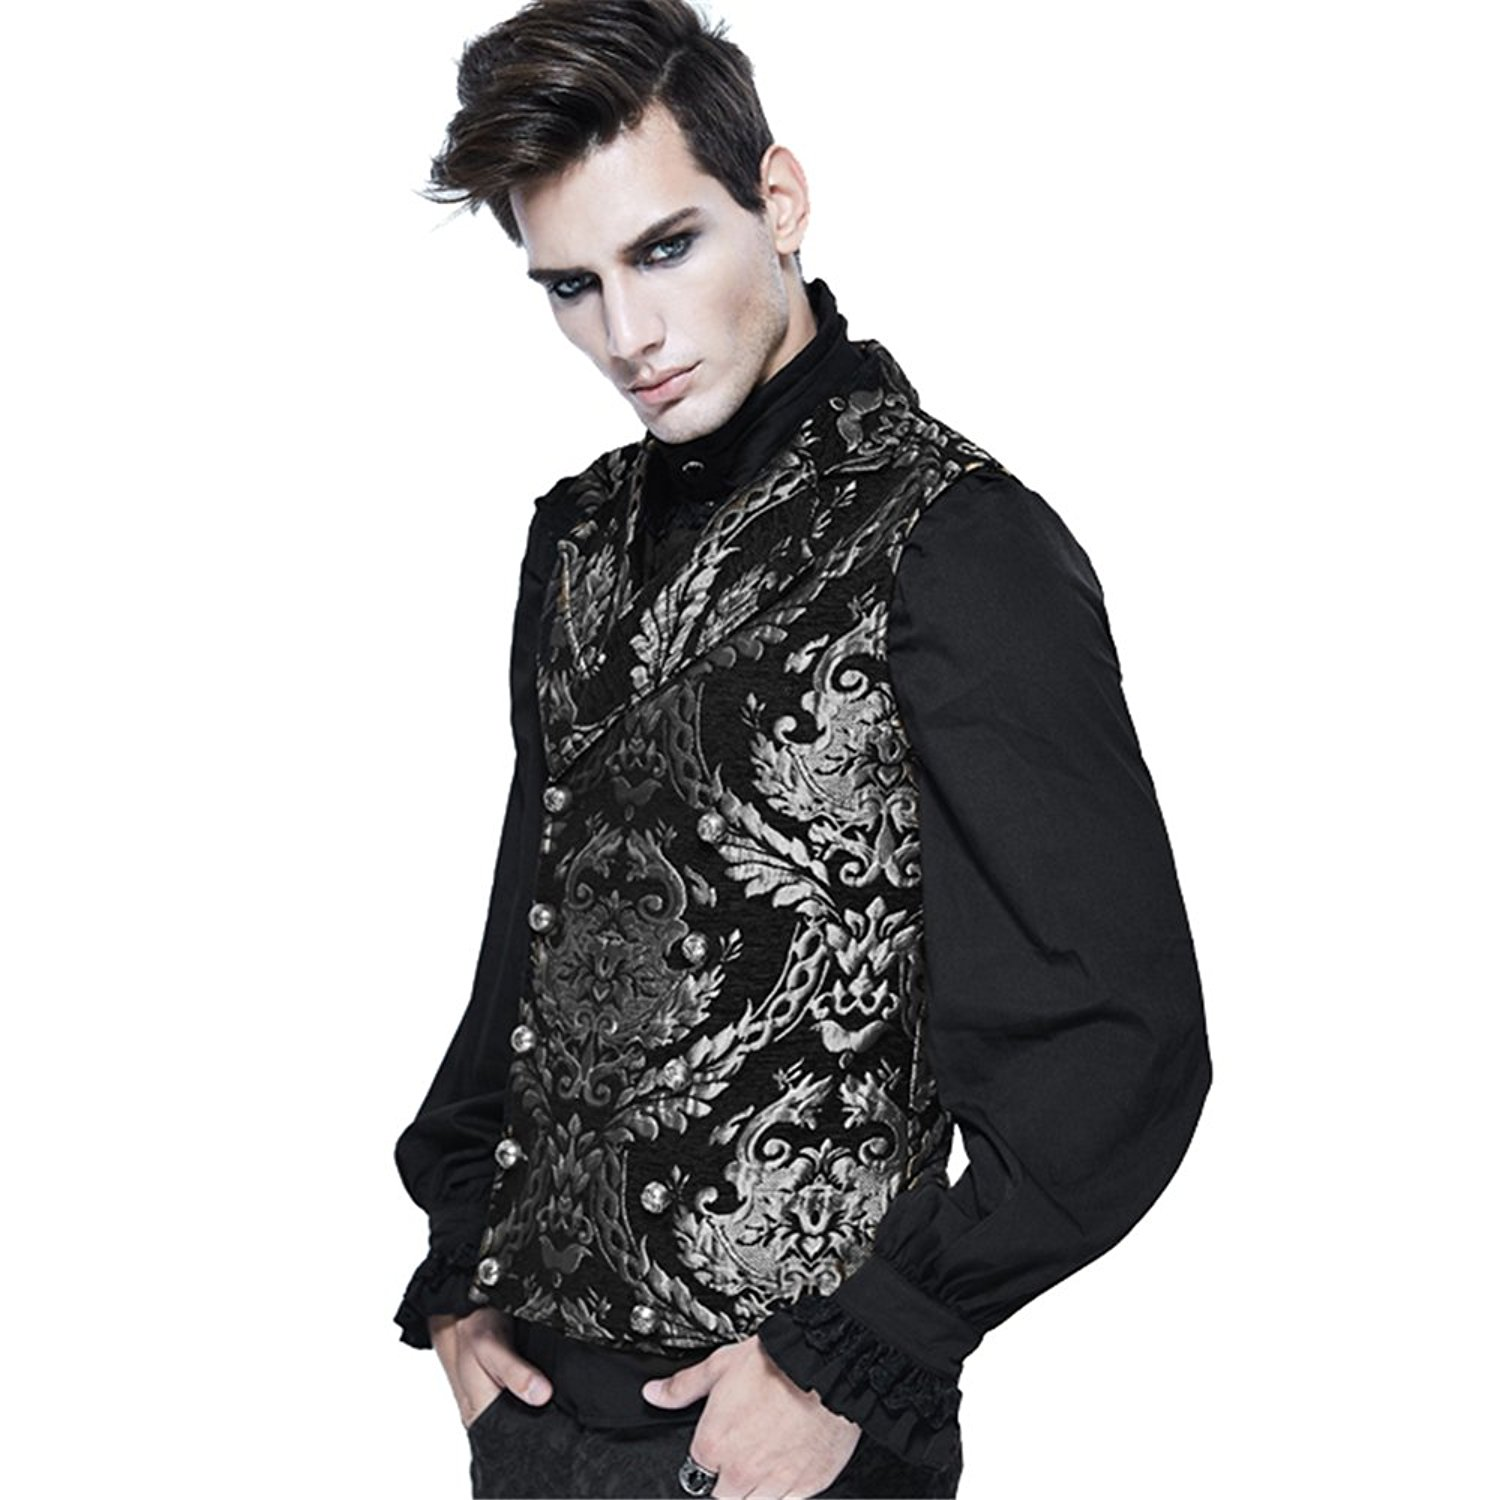 454c2c3ba98 Get Quotations · Devil Fashion Steampunk Gothic Men Waistcoat Punk Vintage  Palace Embroidered Sleeveless Vests Tops Coats